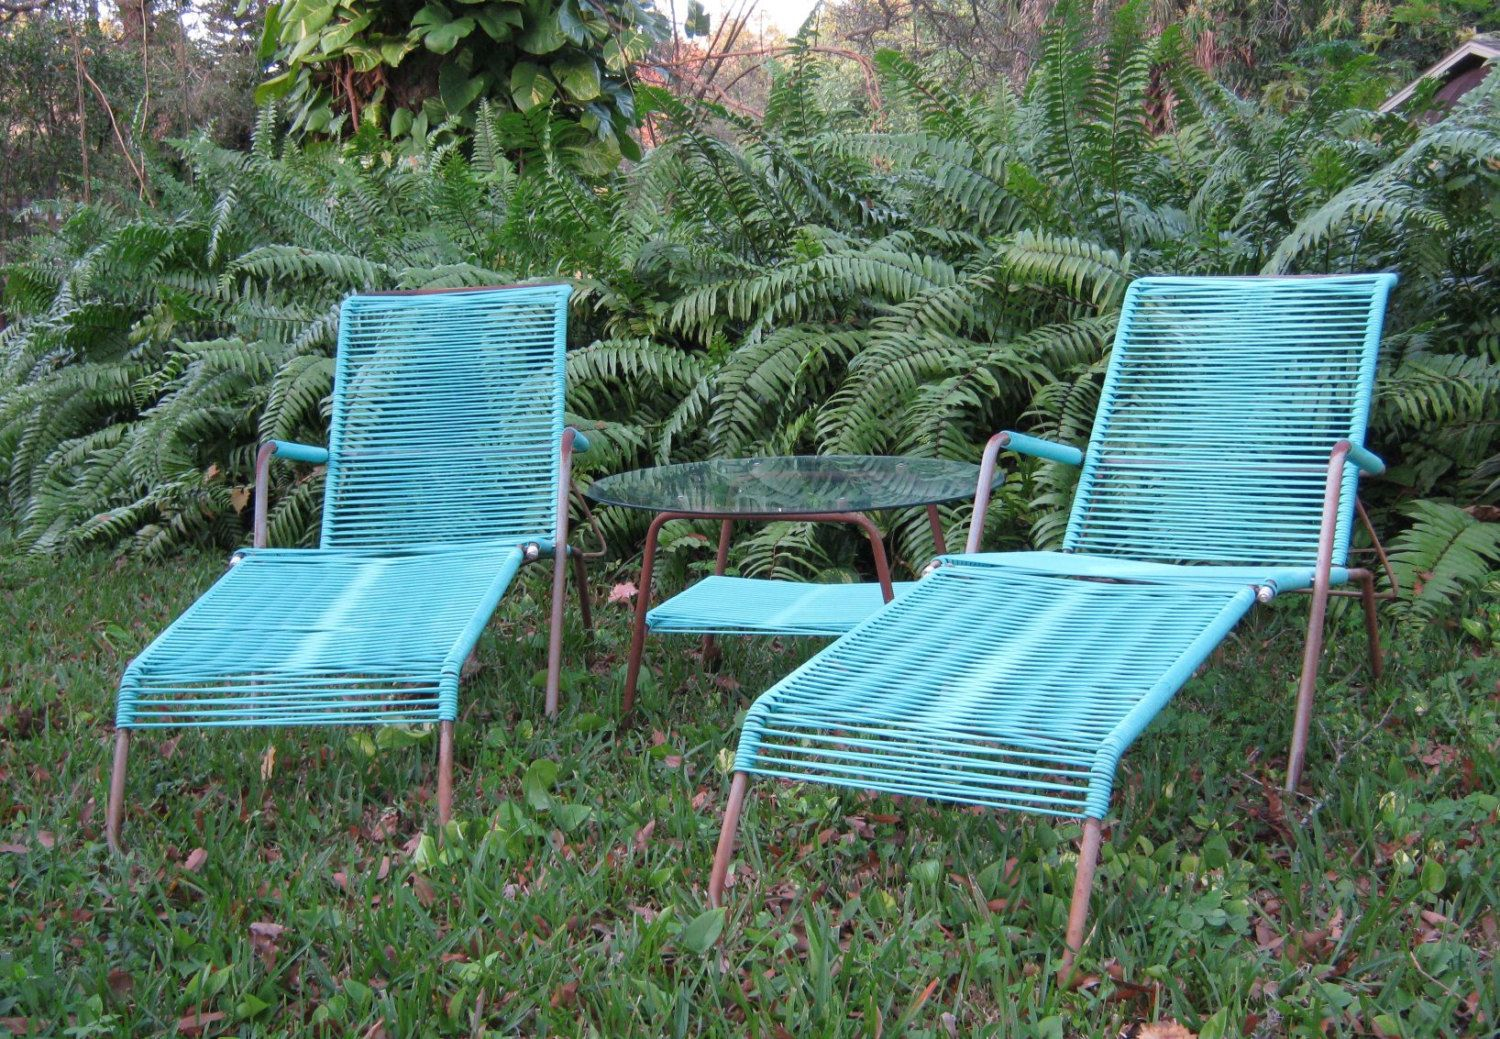 turquoise patio chairs ice cream parlor chair amazing brady bunch era lawn furniture brilliant vintage lounge table by telescope mid century outdoor 300 00 via etsy